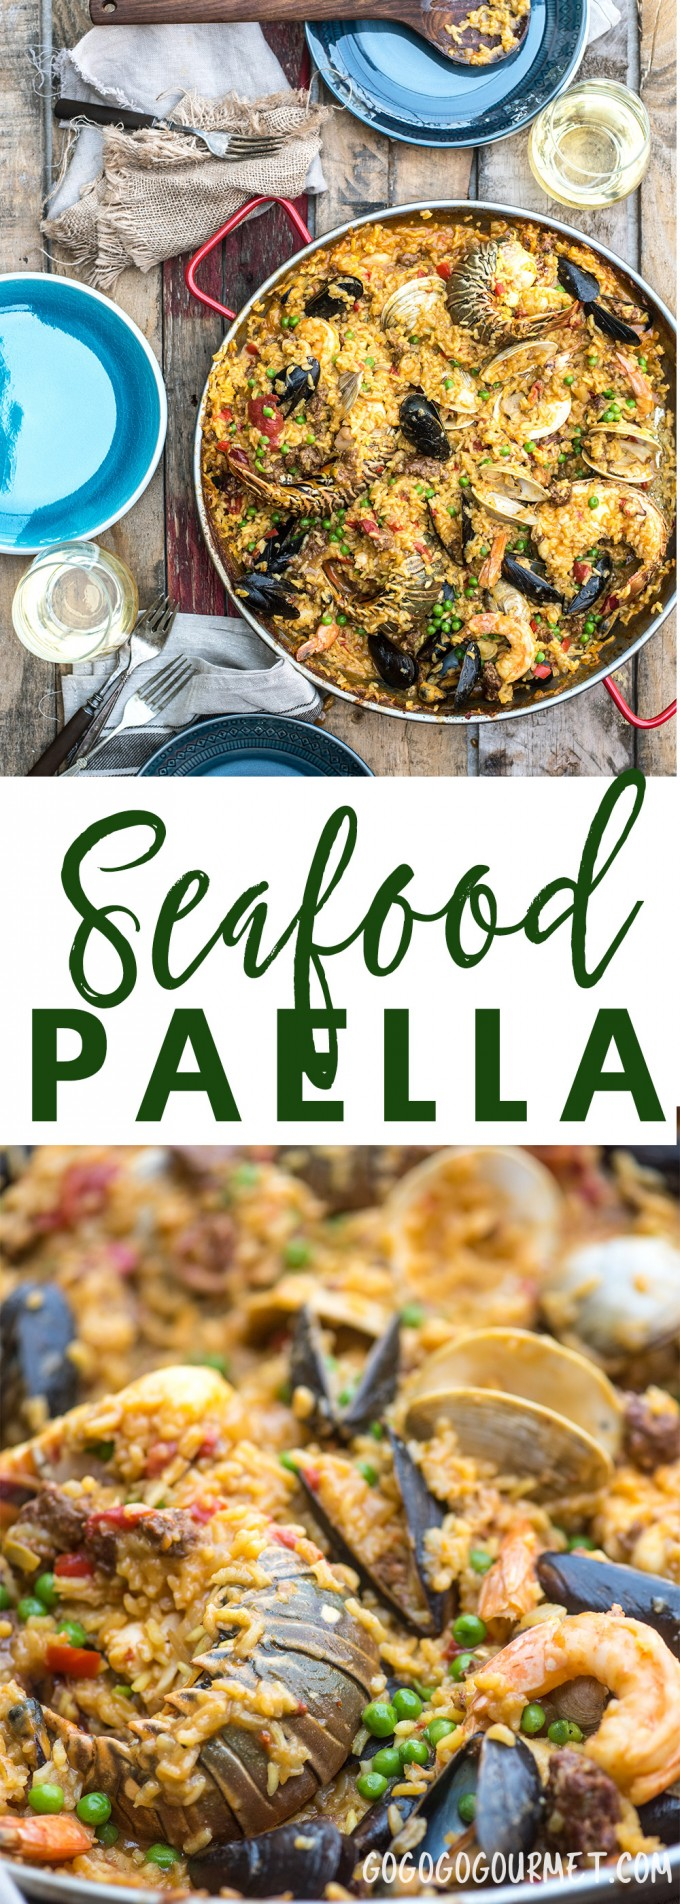 Seafood paella is a flavorful dinner ready to share with friends, chock full of seafood and chorizo.